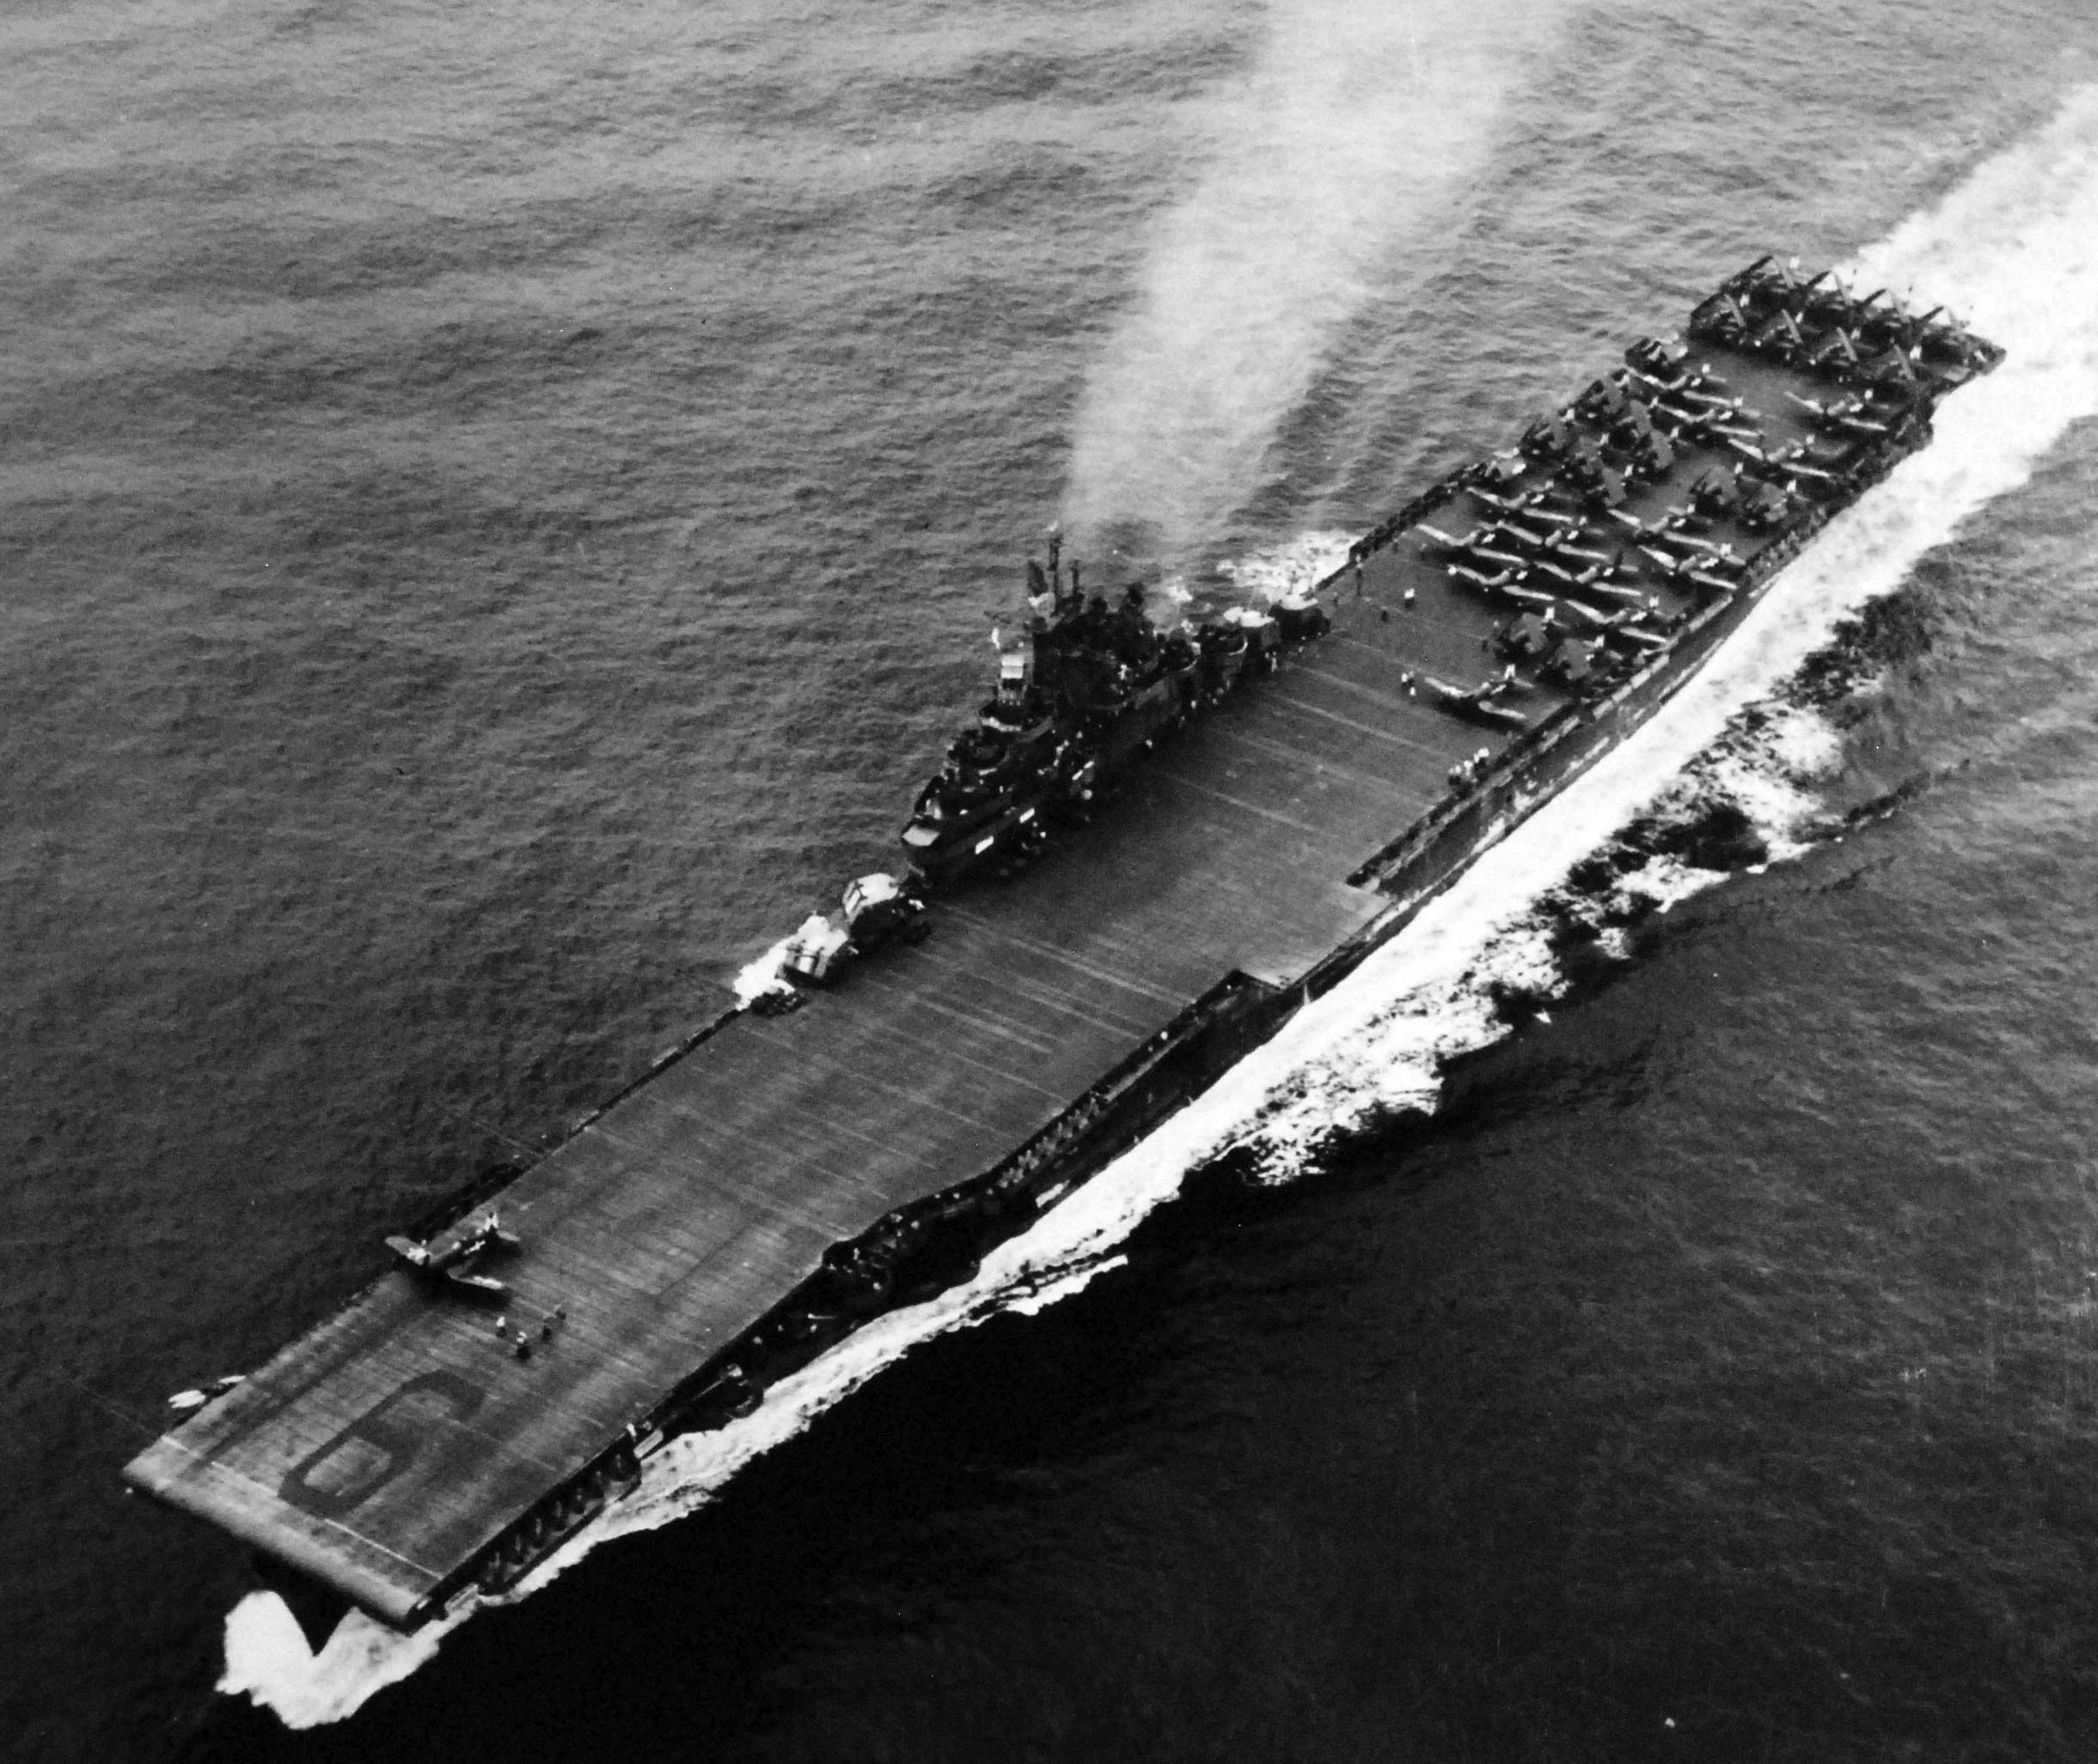 CV 9 USS Essex at sea during the Okinawa Campaign 20th May 1945 02